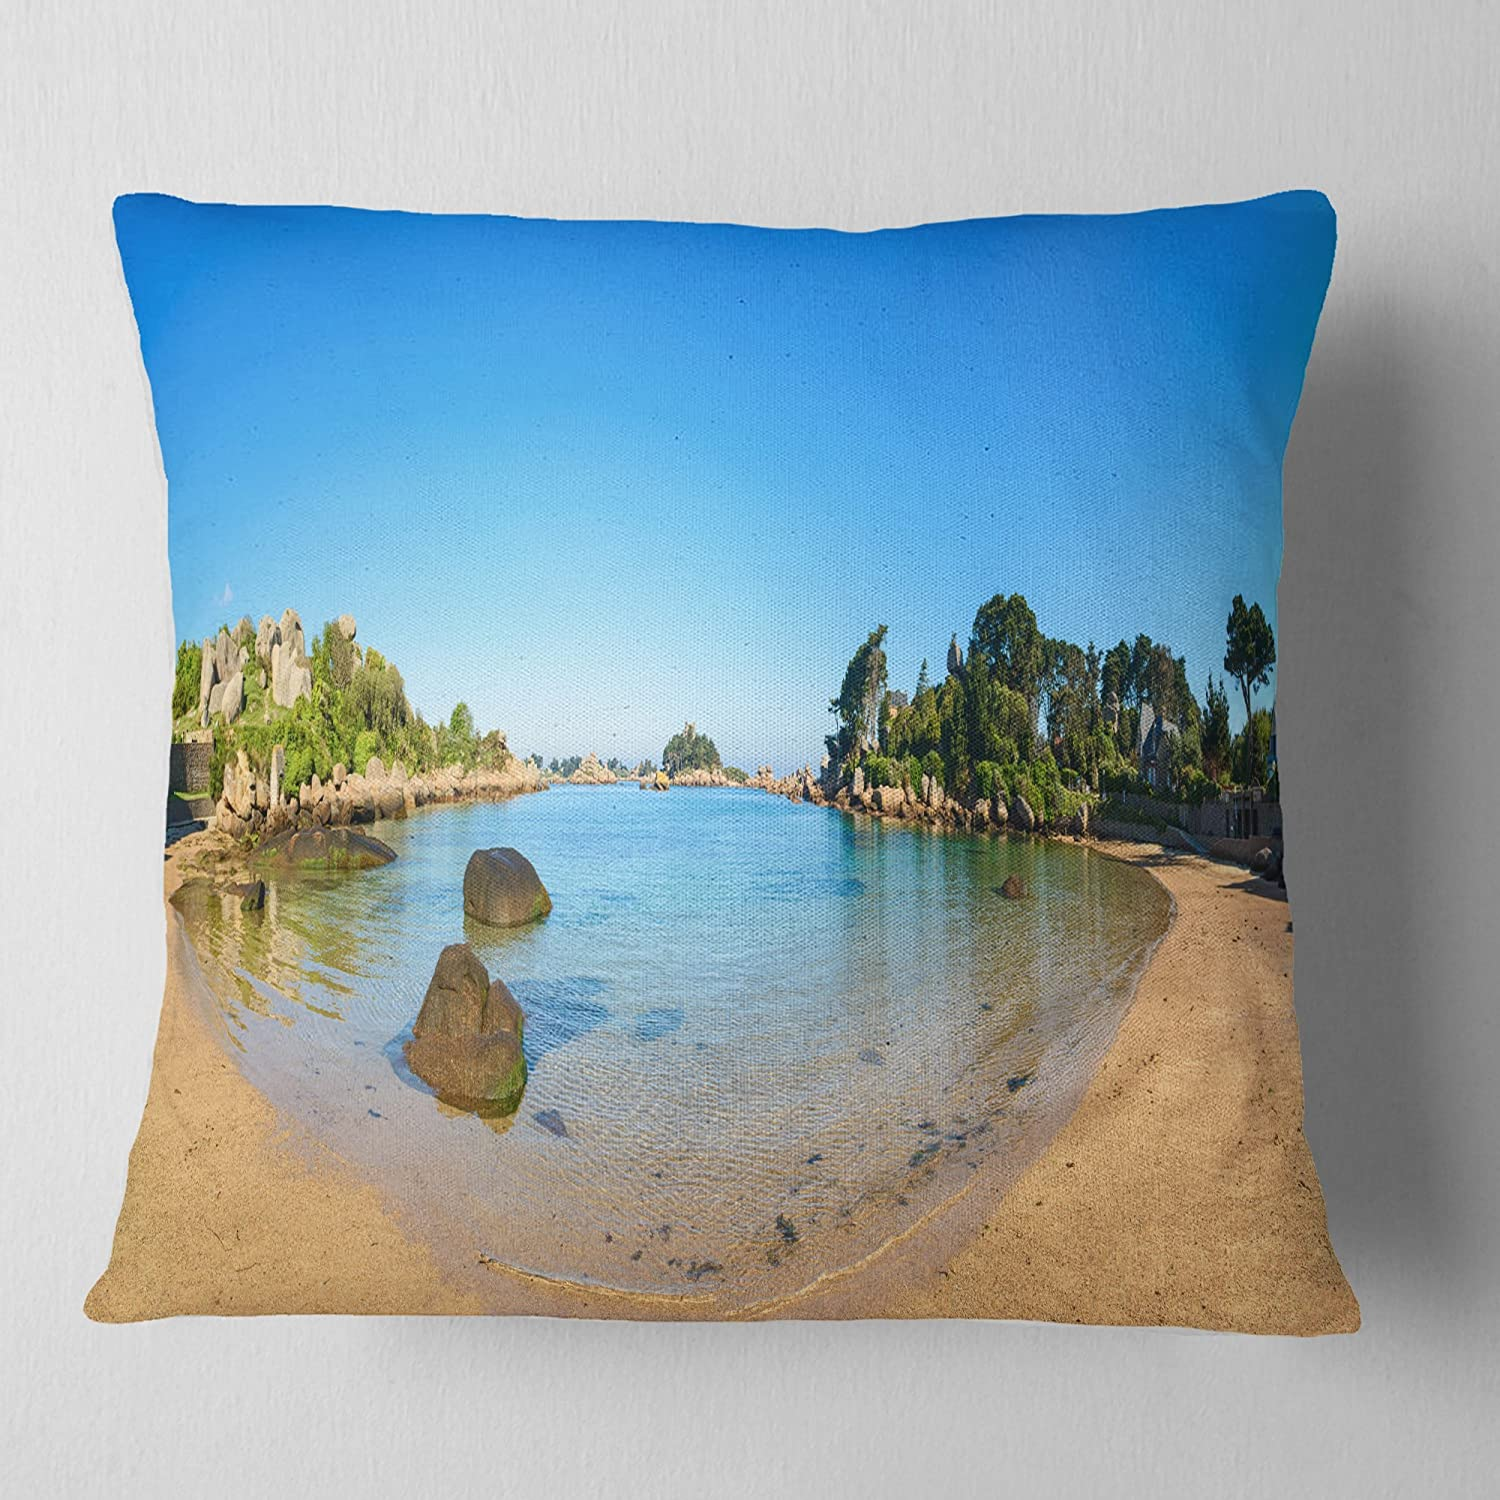 Designart CU11335-26-26 Ploumanach Rocks and Beach Morning' Landscape Wall Cushion Cover for Living Room, Sofa Throw Pillow 26 in. x 26 in. in, Insert Printed On Both Side